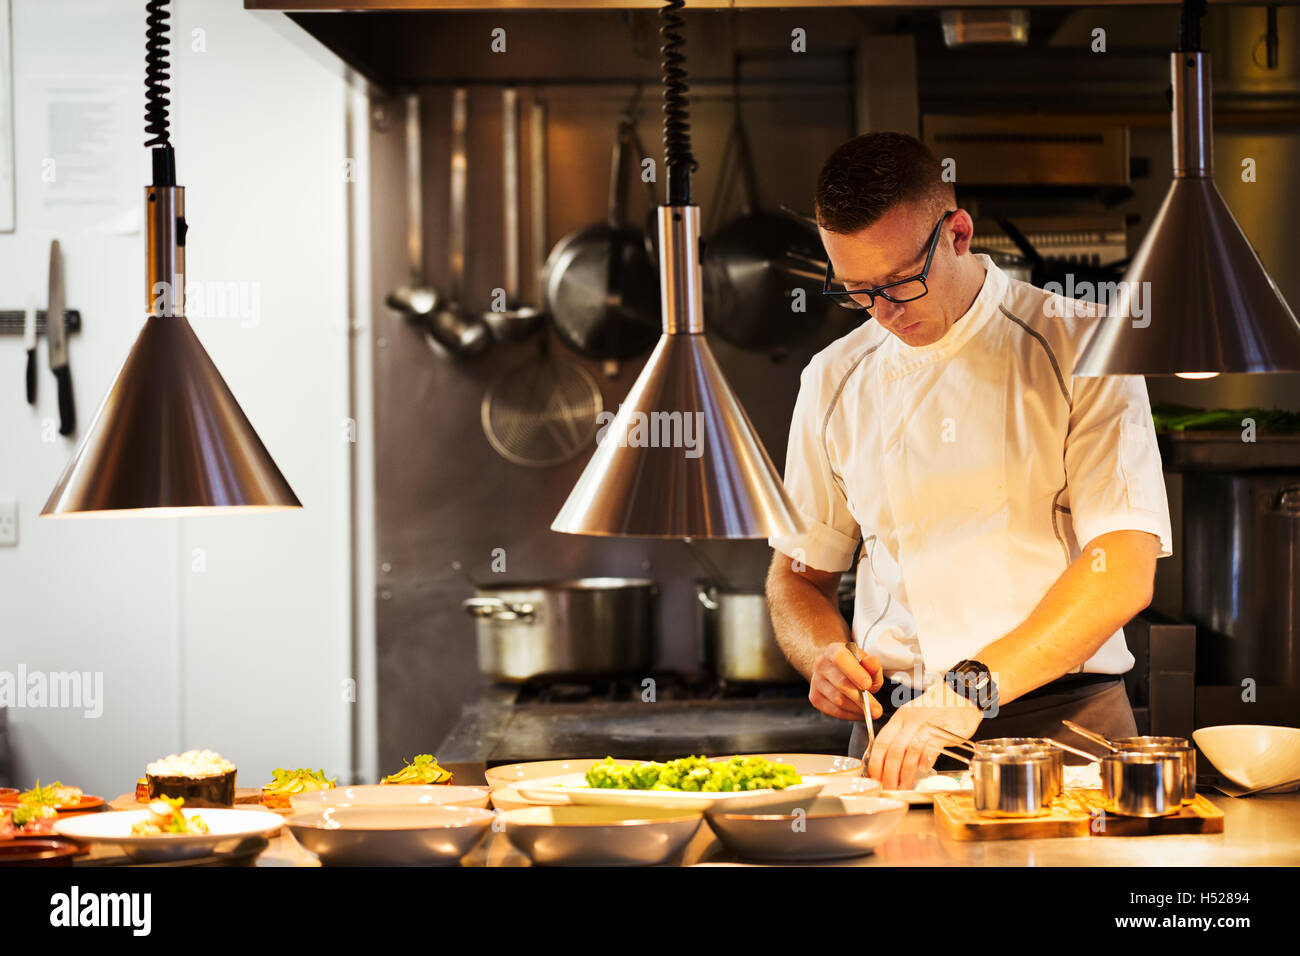 Chef in a restaurant kitchen plating food stock photo for Kitchen 8 restaurant